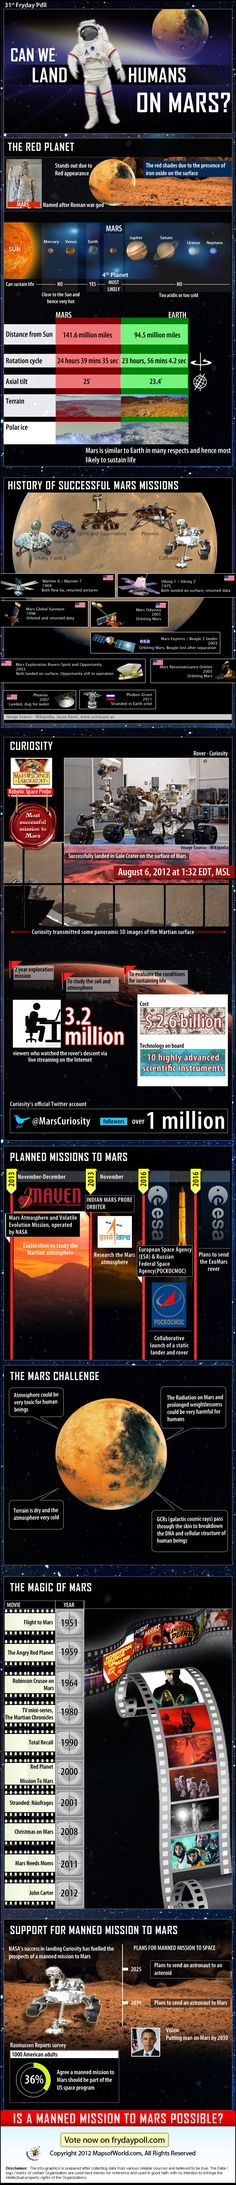 Find In-depth Review, Video And Infographic On Mars Exploration. Learn more about the history of Mars missions, Curiosity rover, future Mars missions and the challenges for a manned mission to the red planet.